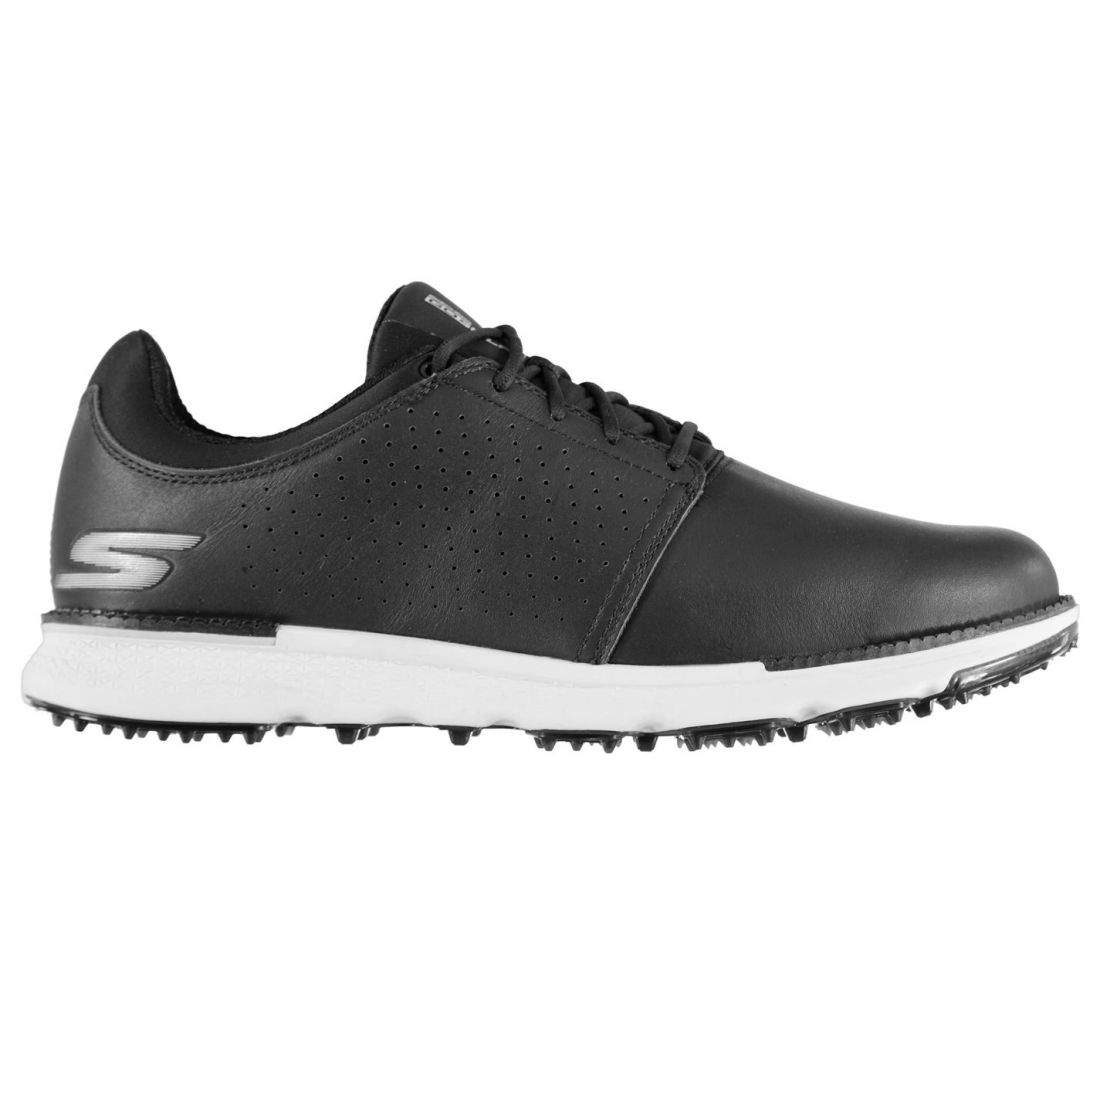 6f832c24ba0a Skechers Mens Elite Golf Shoes Spikeless Lace Up Waterproof Padded ...